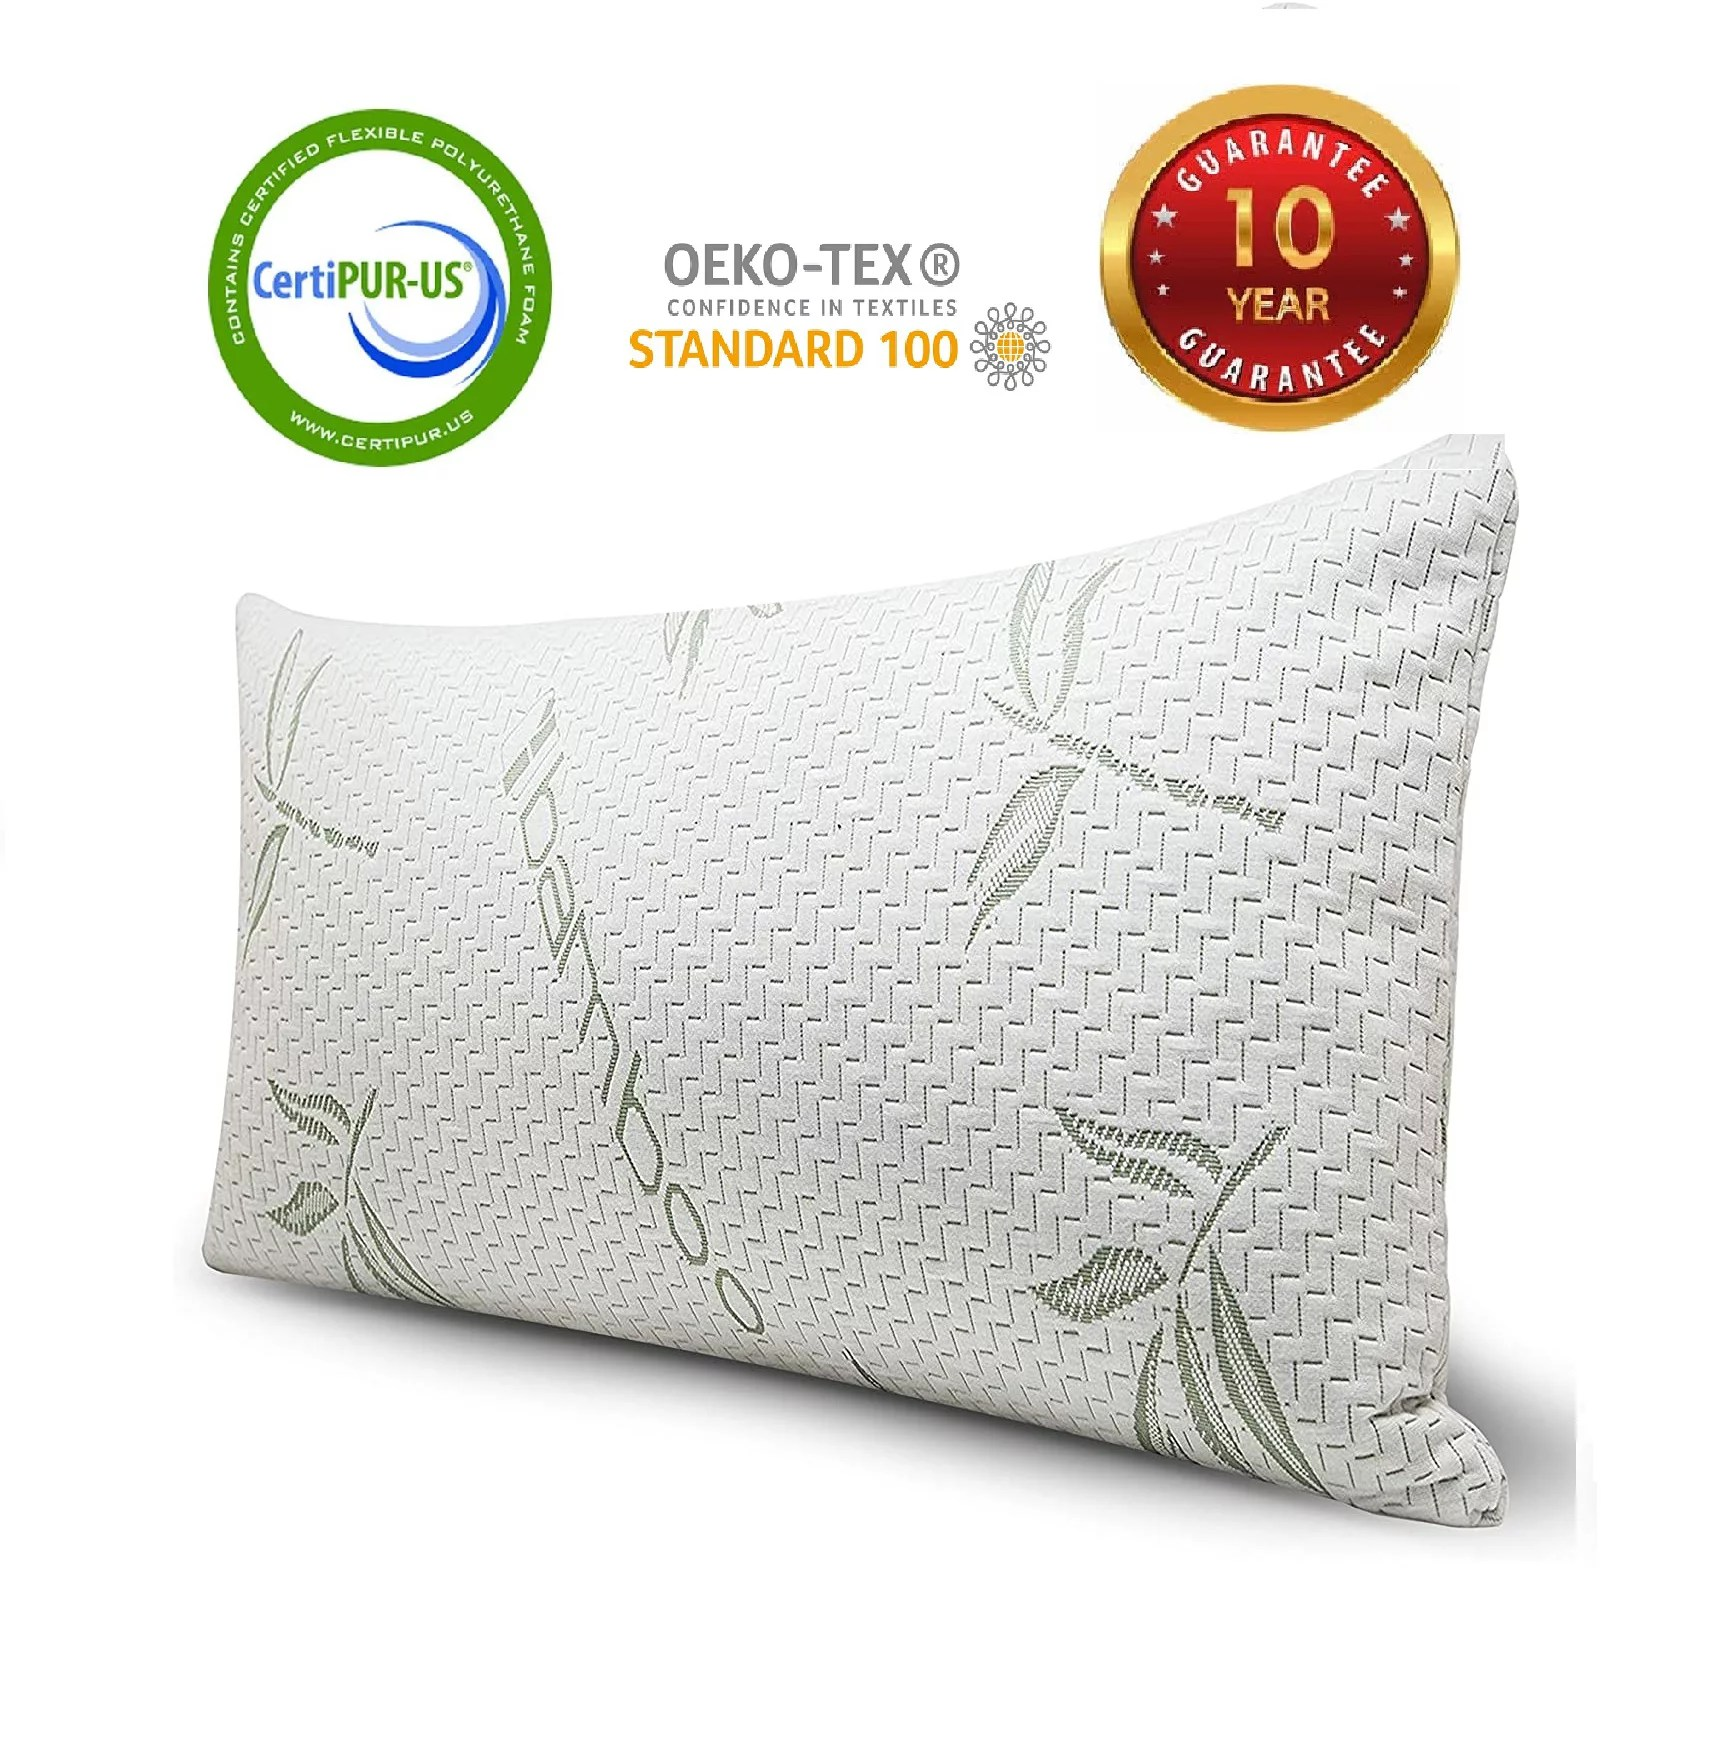 coop home goods toddler pillow 14x19 hypoallergenic cross cut memory foam soft touch lulltra washable cover from bamboo derived rayon